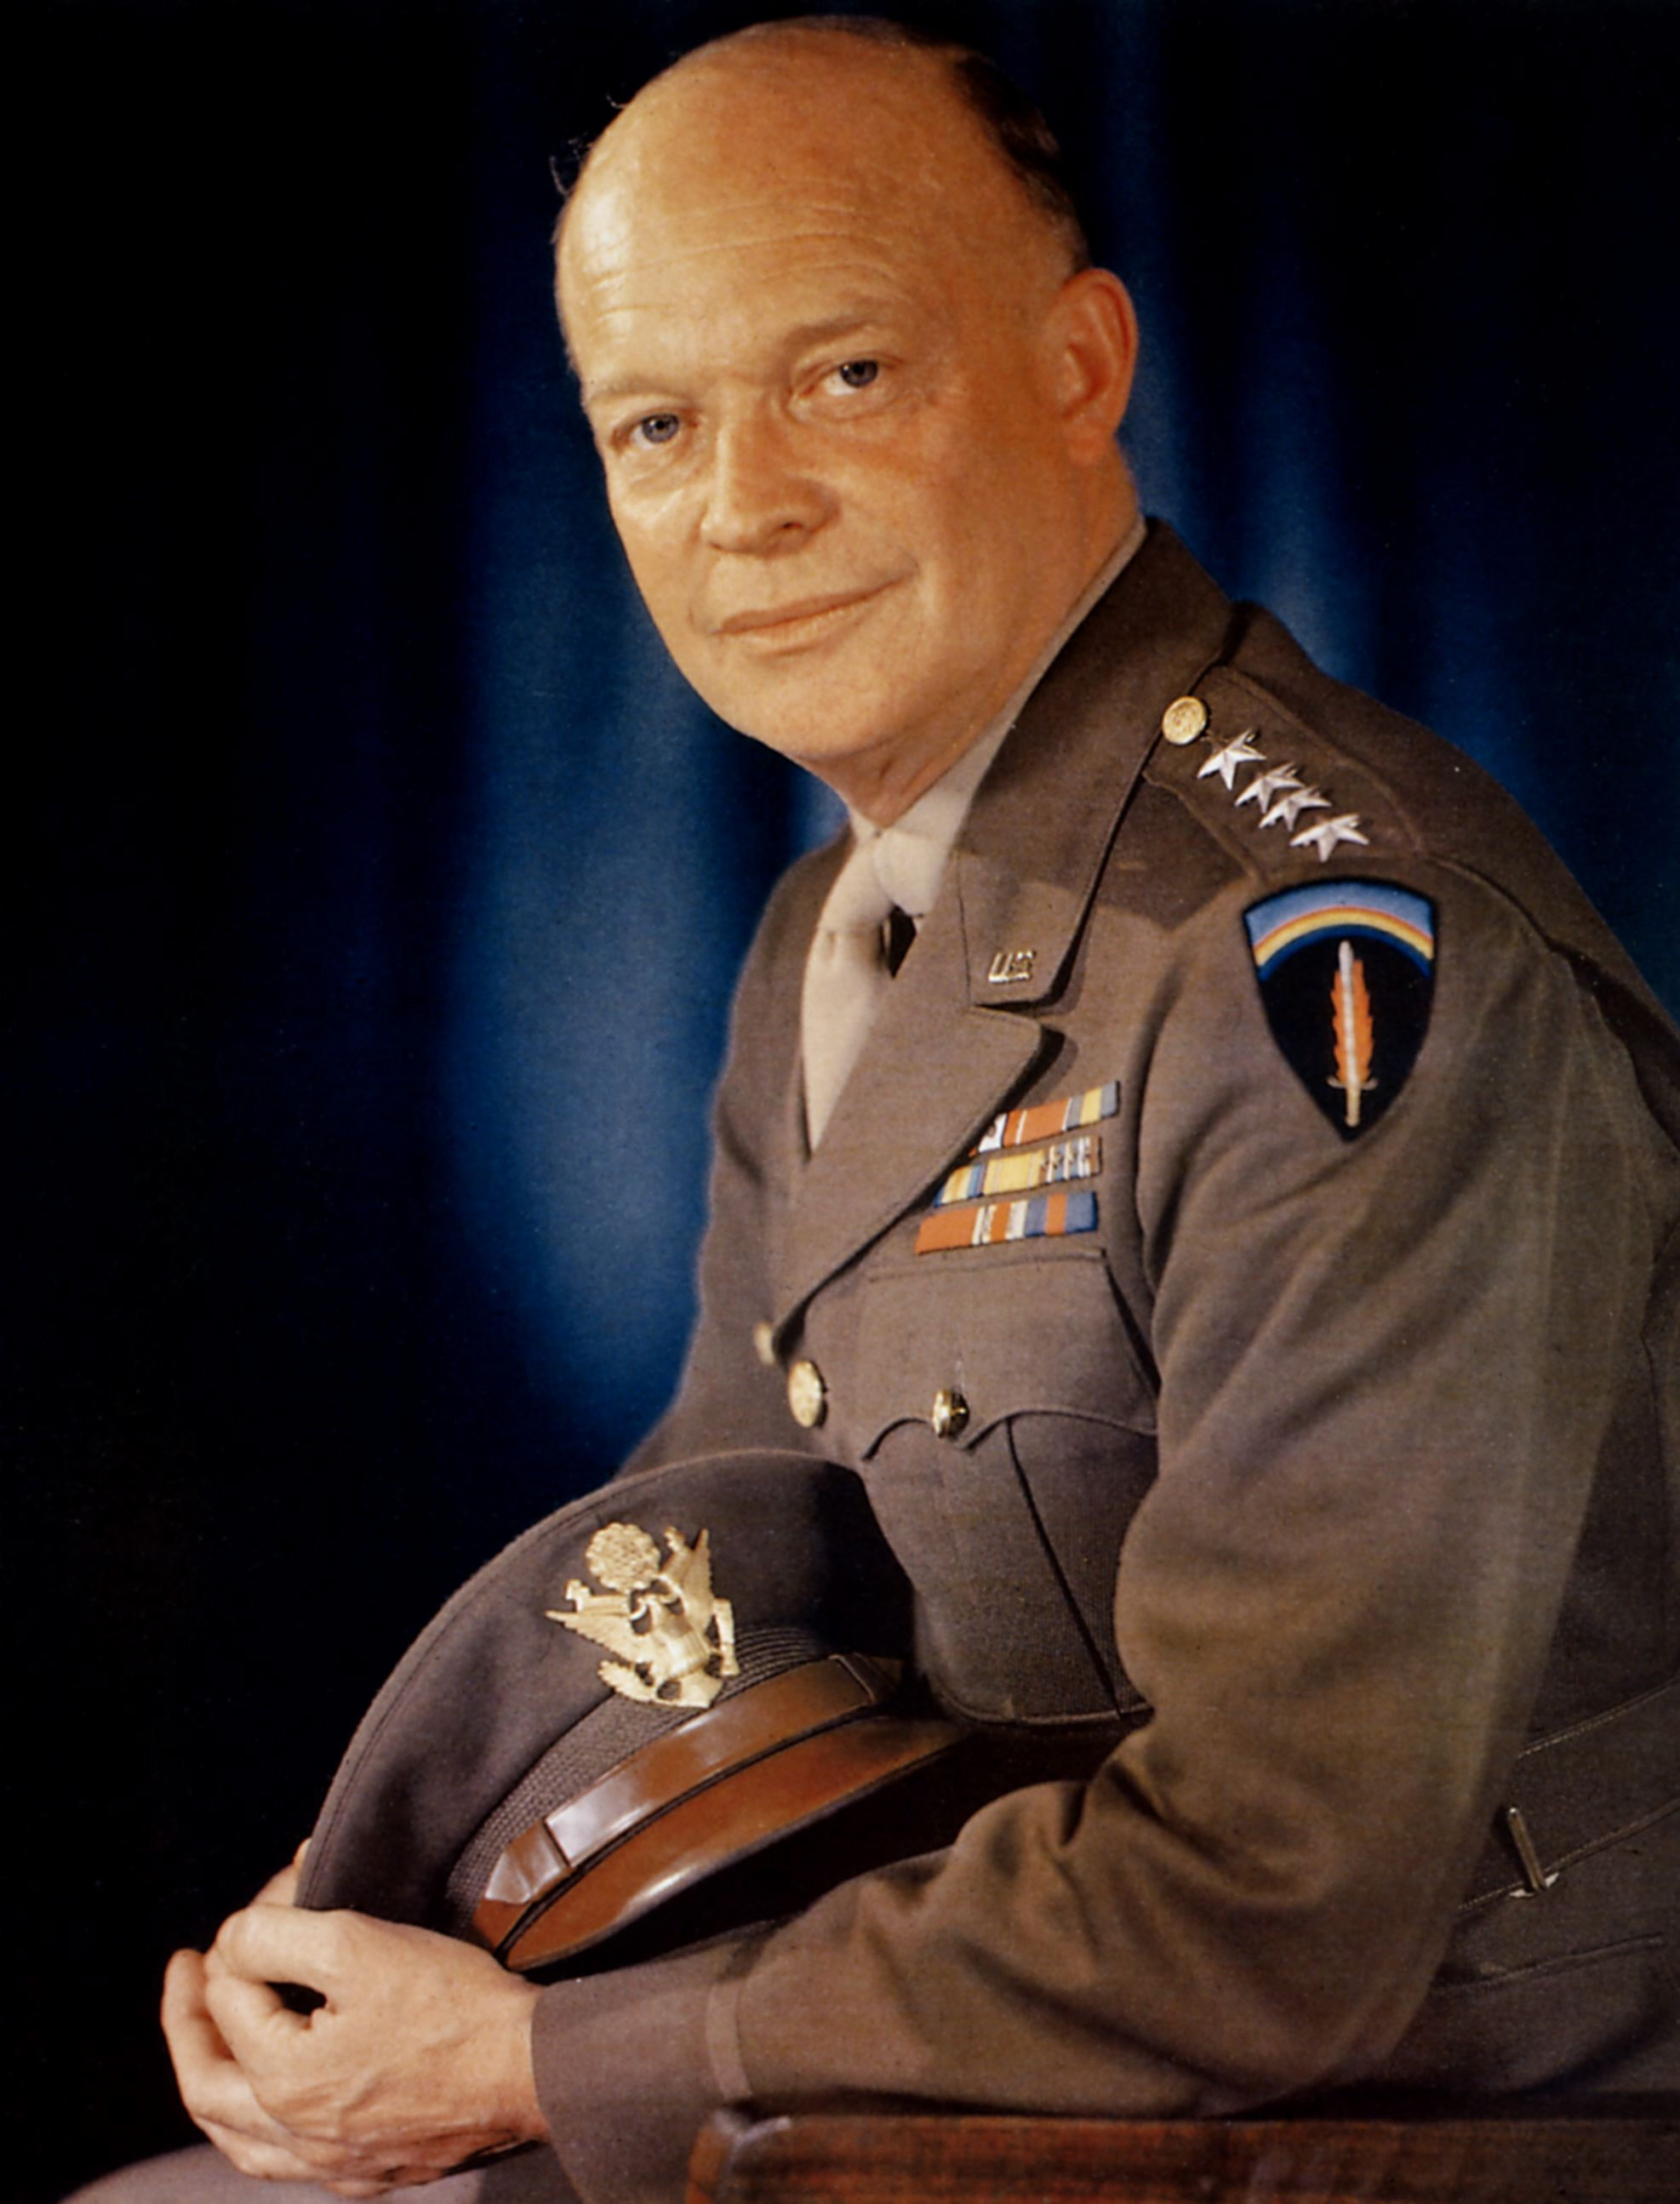 an introduction to the life of dwight ike eisenhower the 34th president of the united states